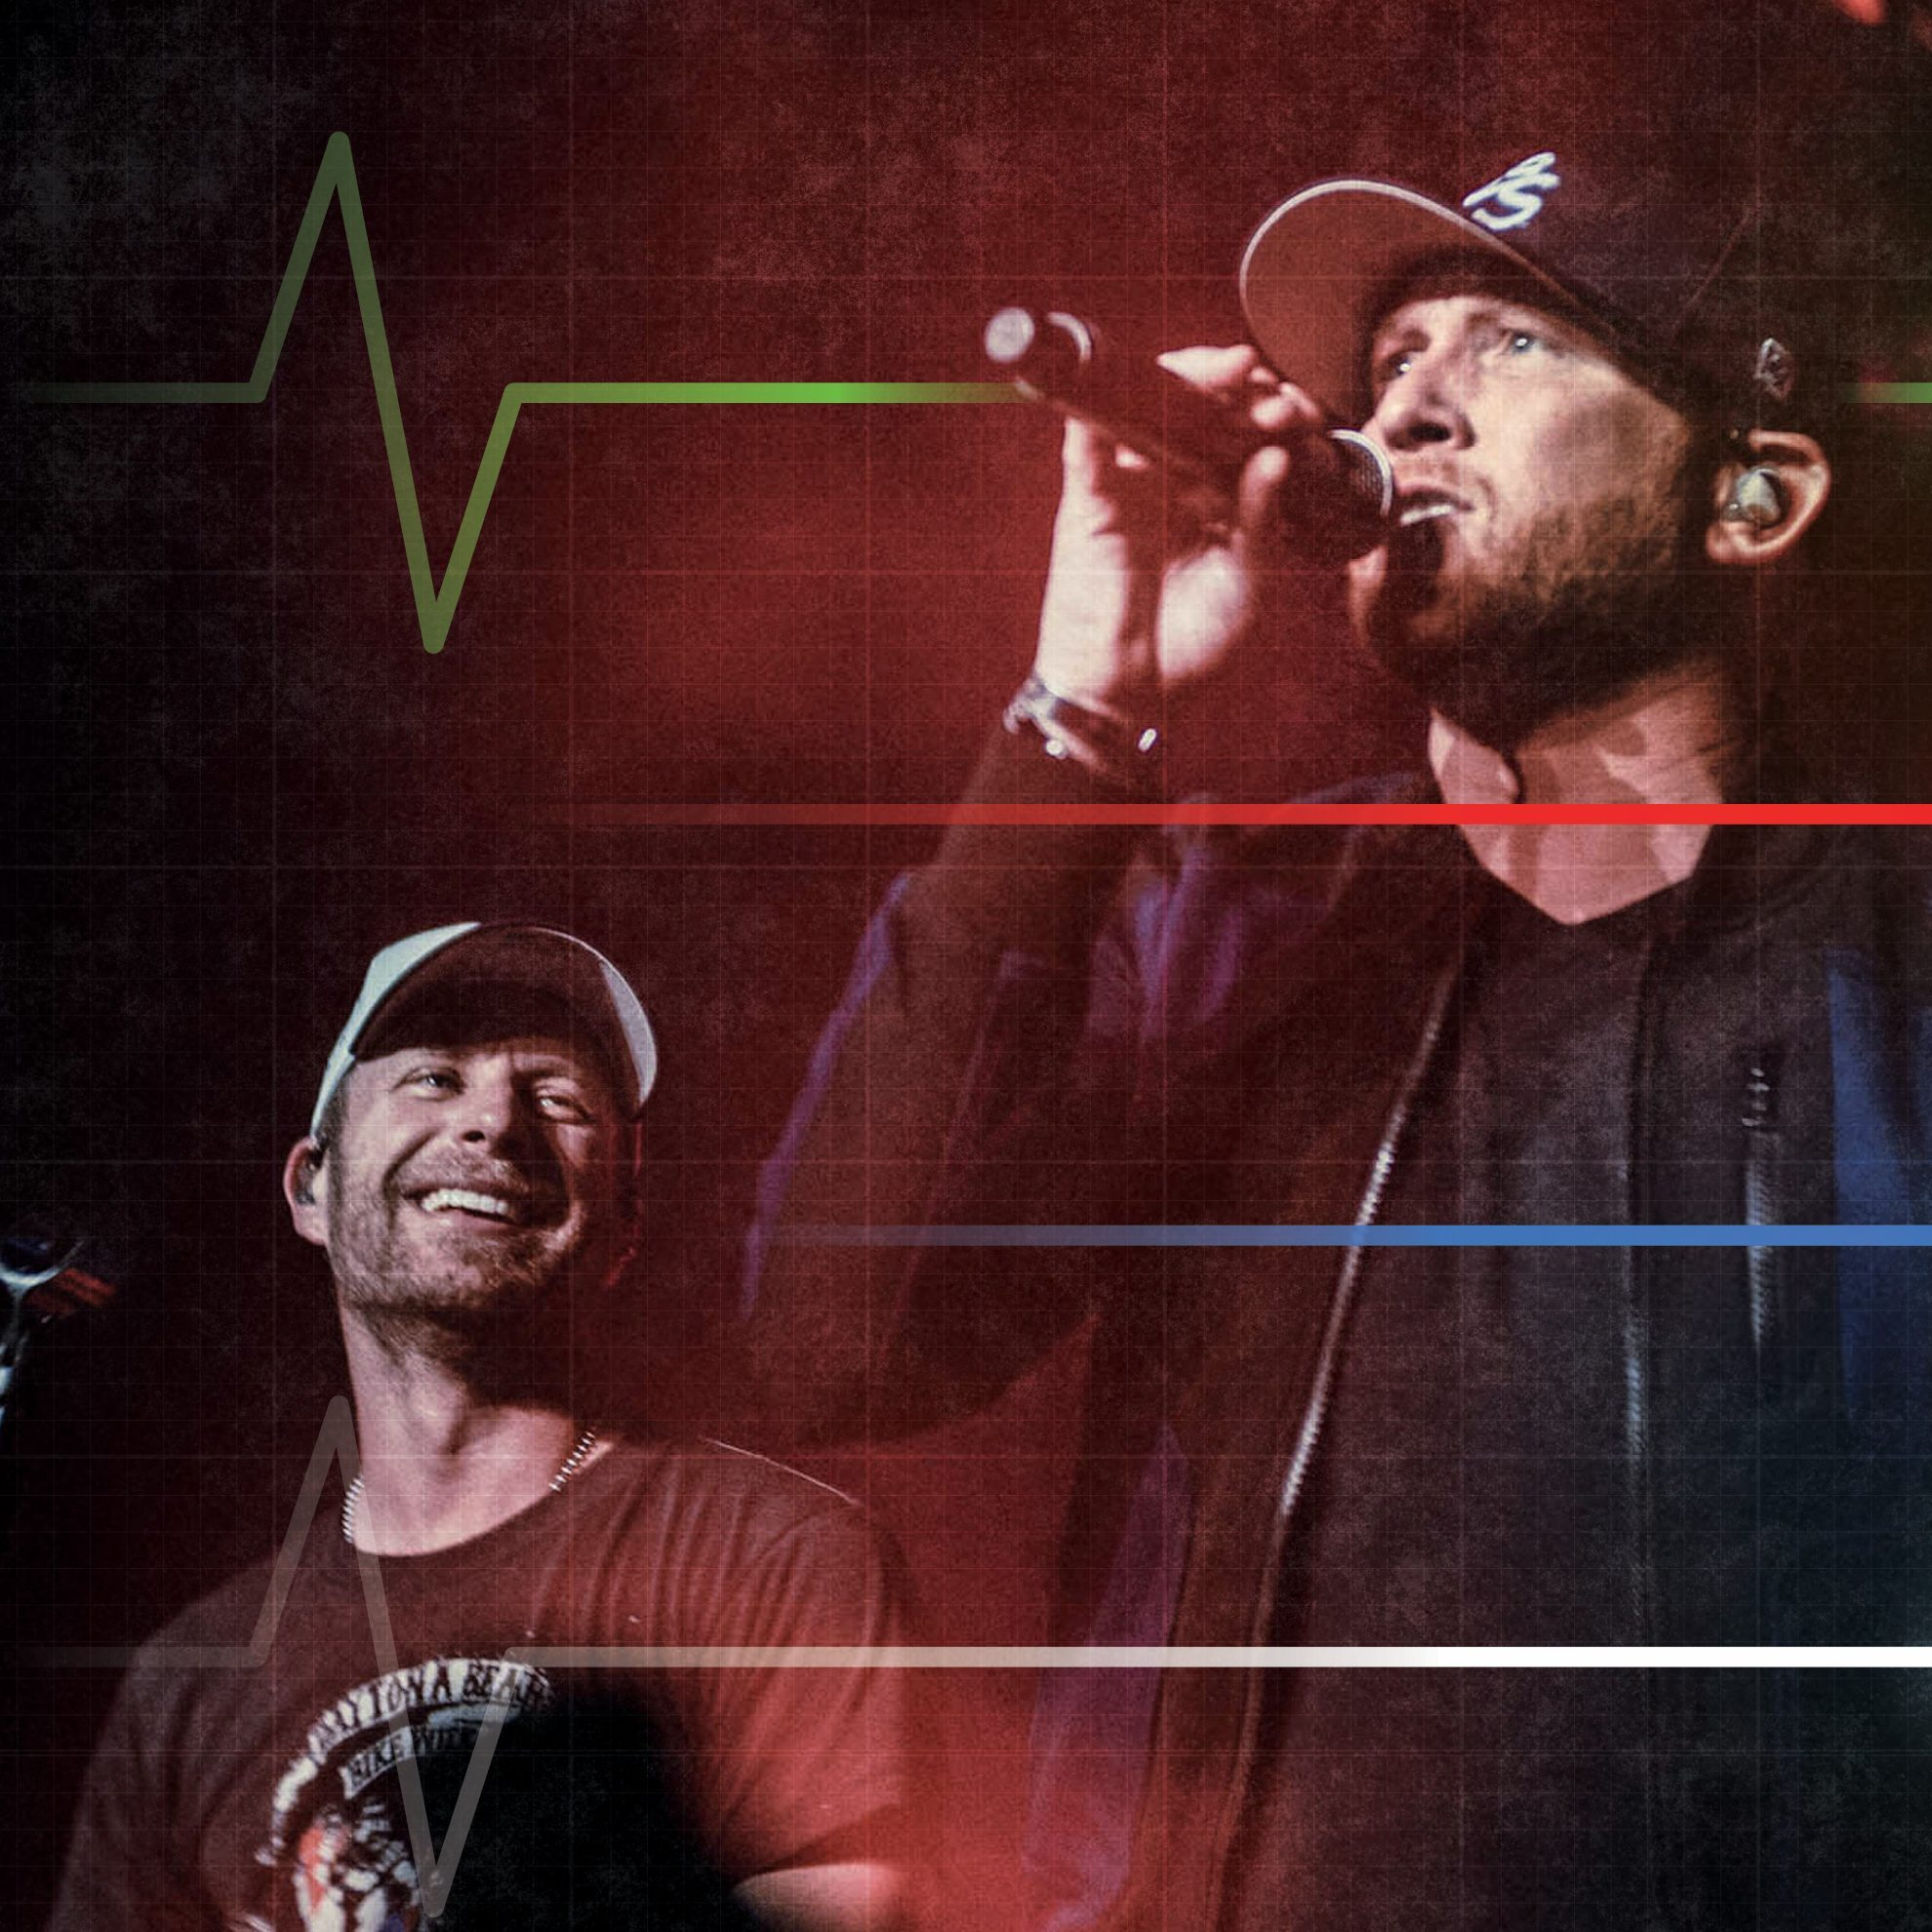 cole swindell • flatliner